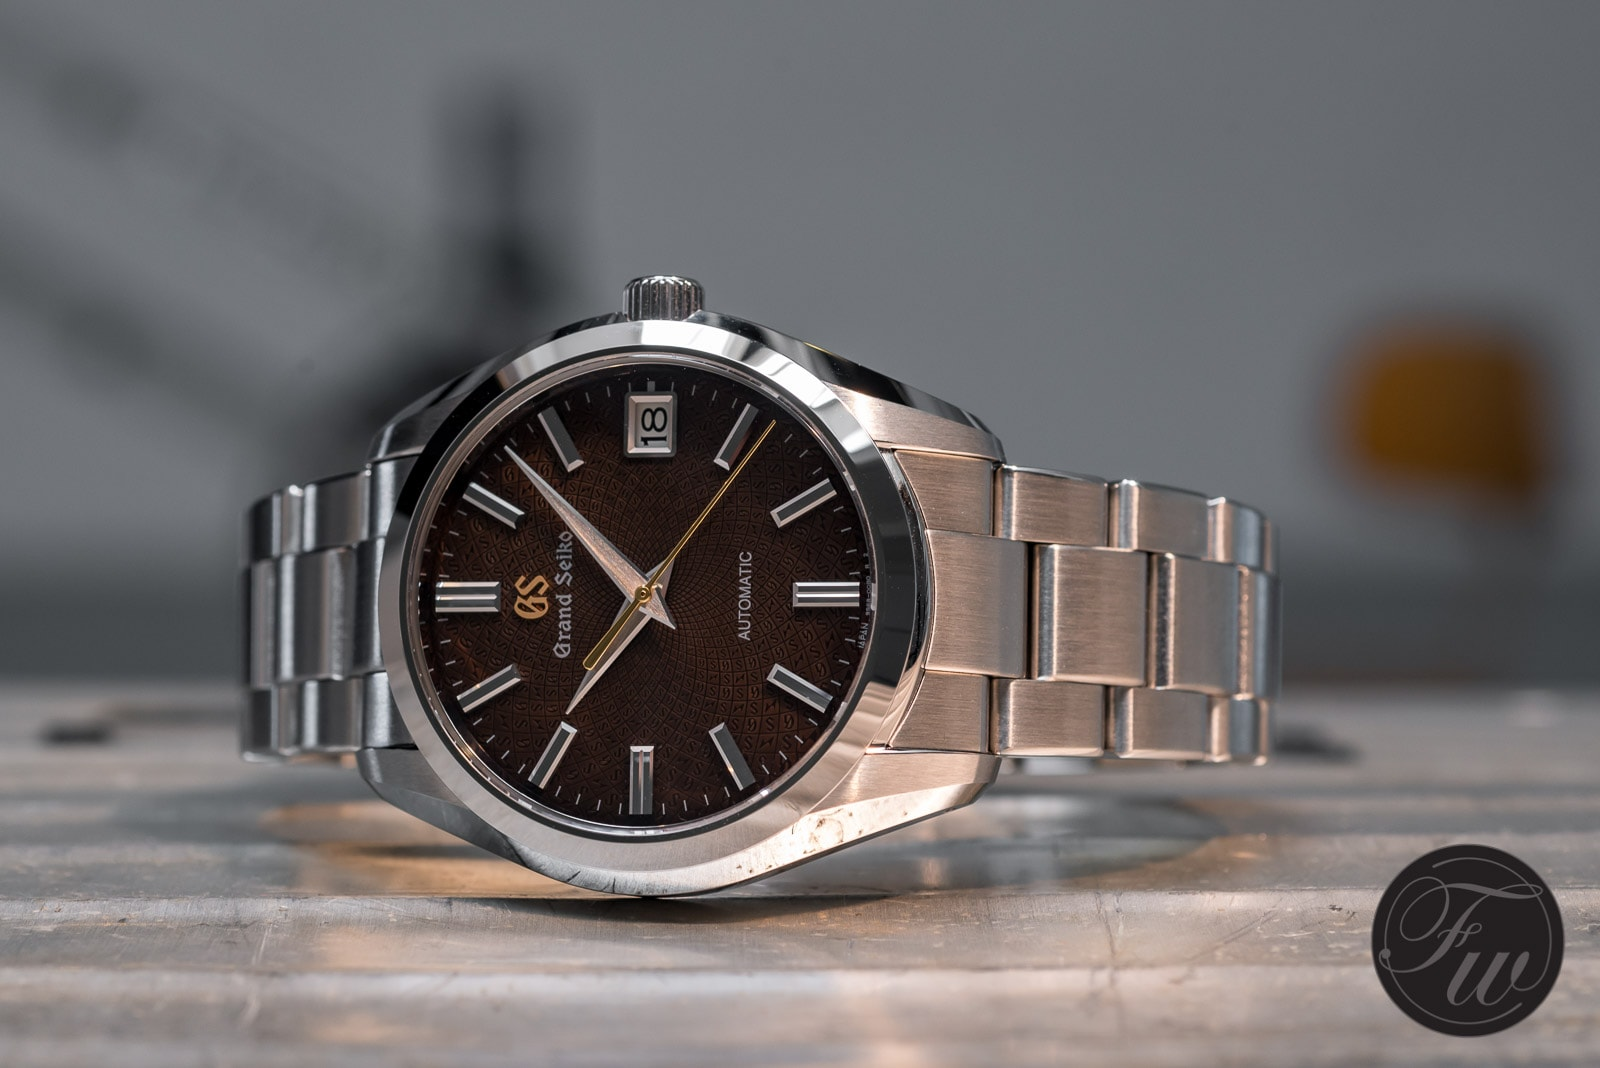 buy popular 68070 14612 Grand Seiko SBGR311 Review - Limited Edition of 1300 pieces only